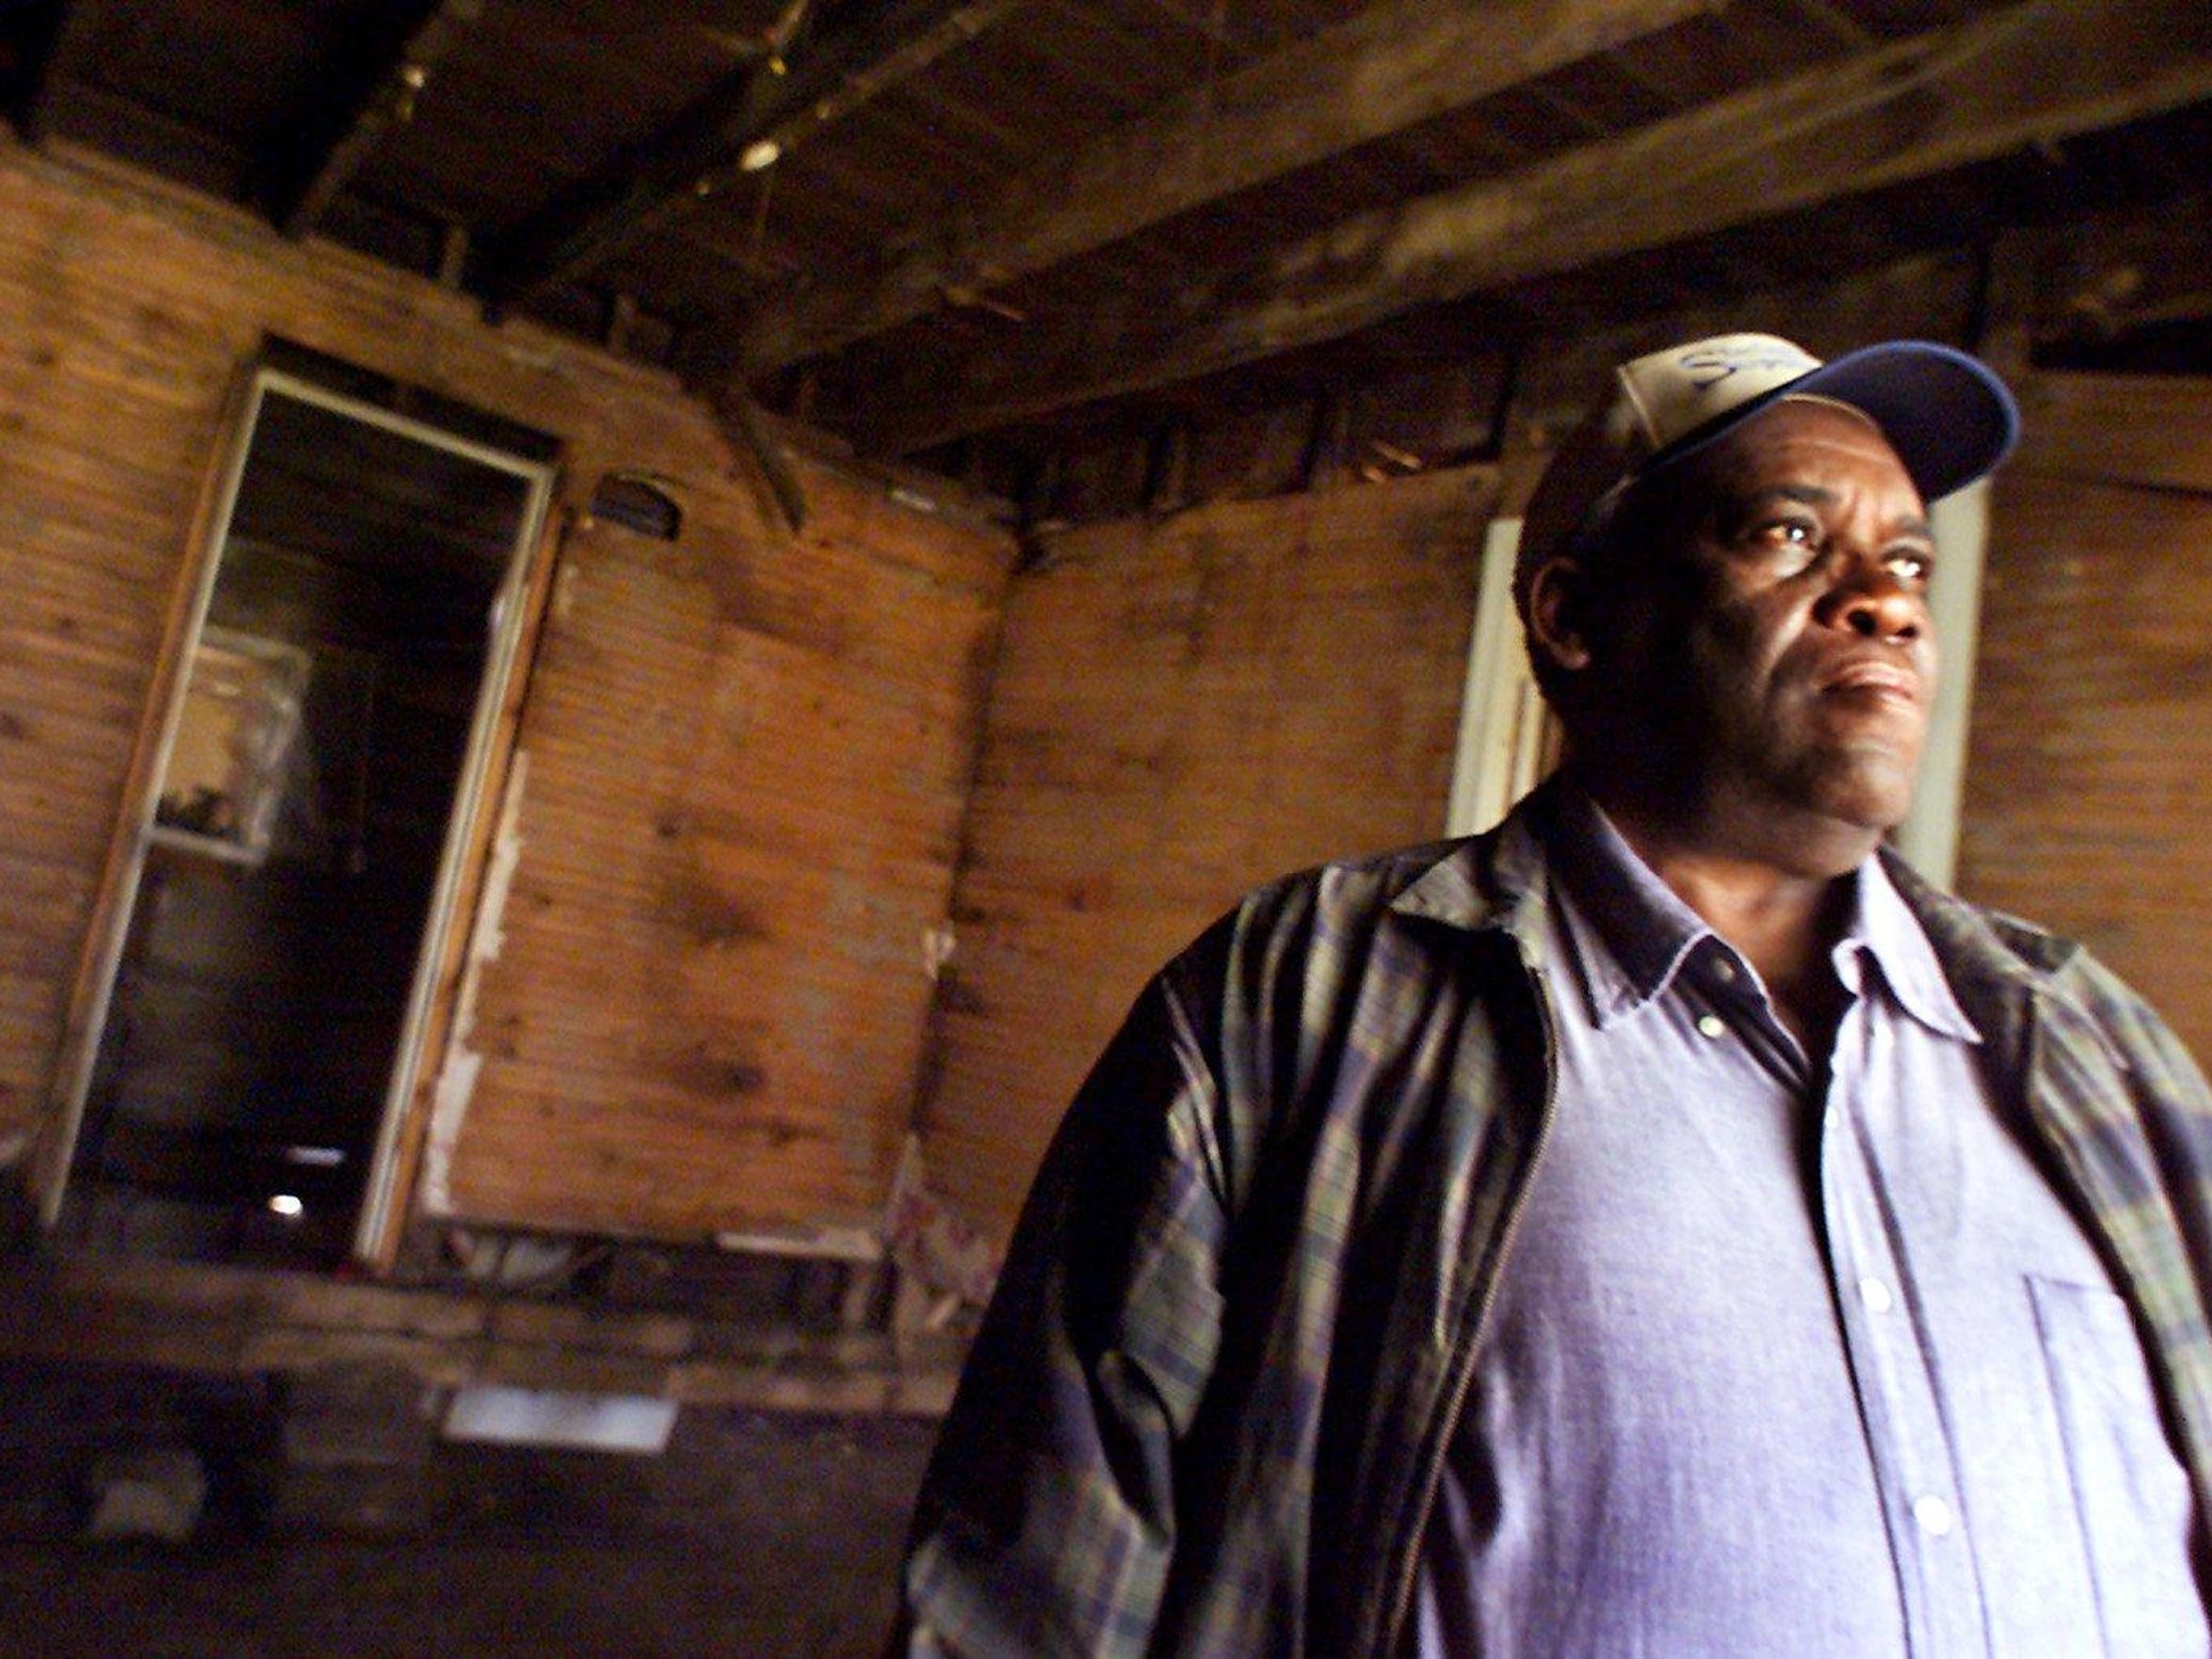 Harvey Matthews Sr. remembers when his grandfather Harvey McLemore use to baby-sit him in this house, which was renovated for Franklin's first African-American Museum, called the McLemore House.